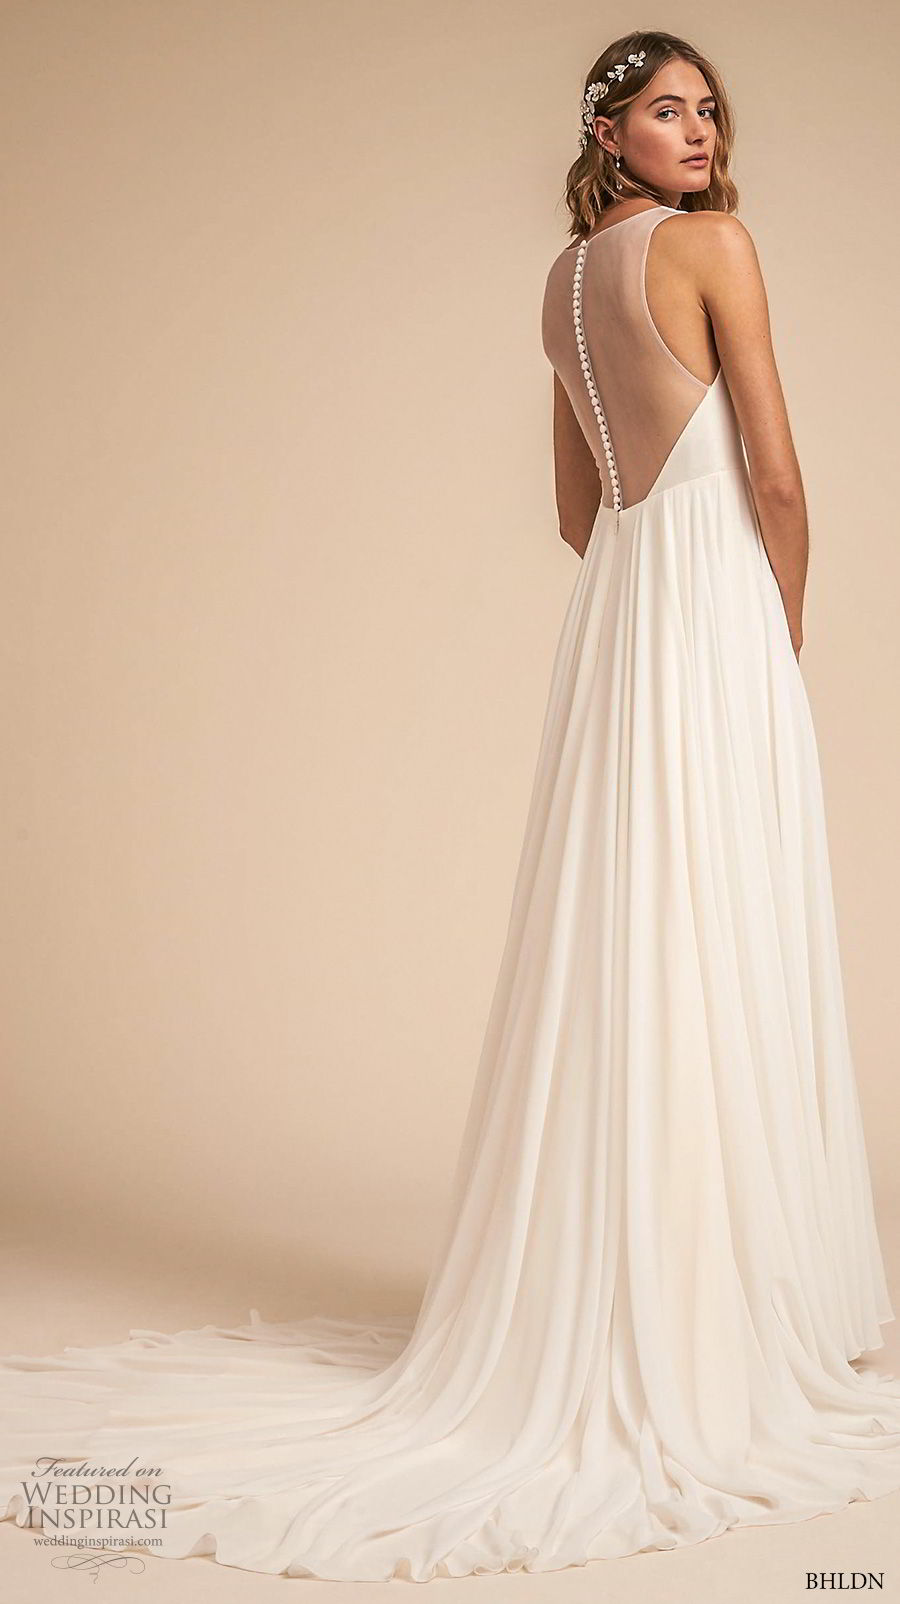 bhldn 2018 away bridal sleeveless deep v neck ruched bodice simple classic a line weding dress sheer button back medium train (2) bv